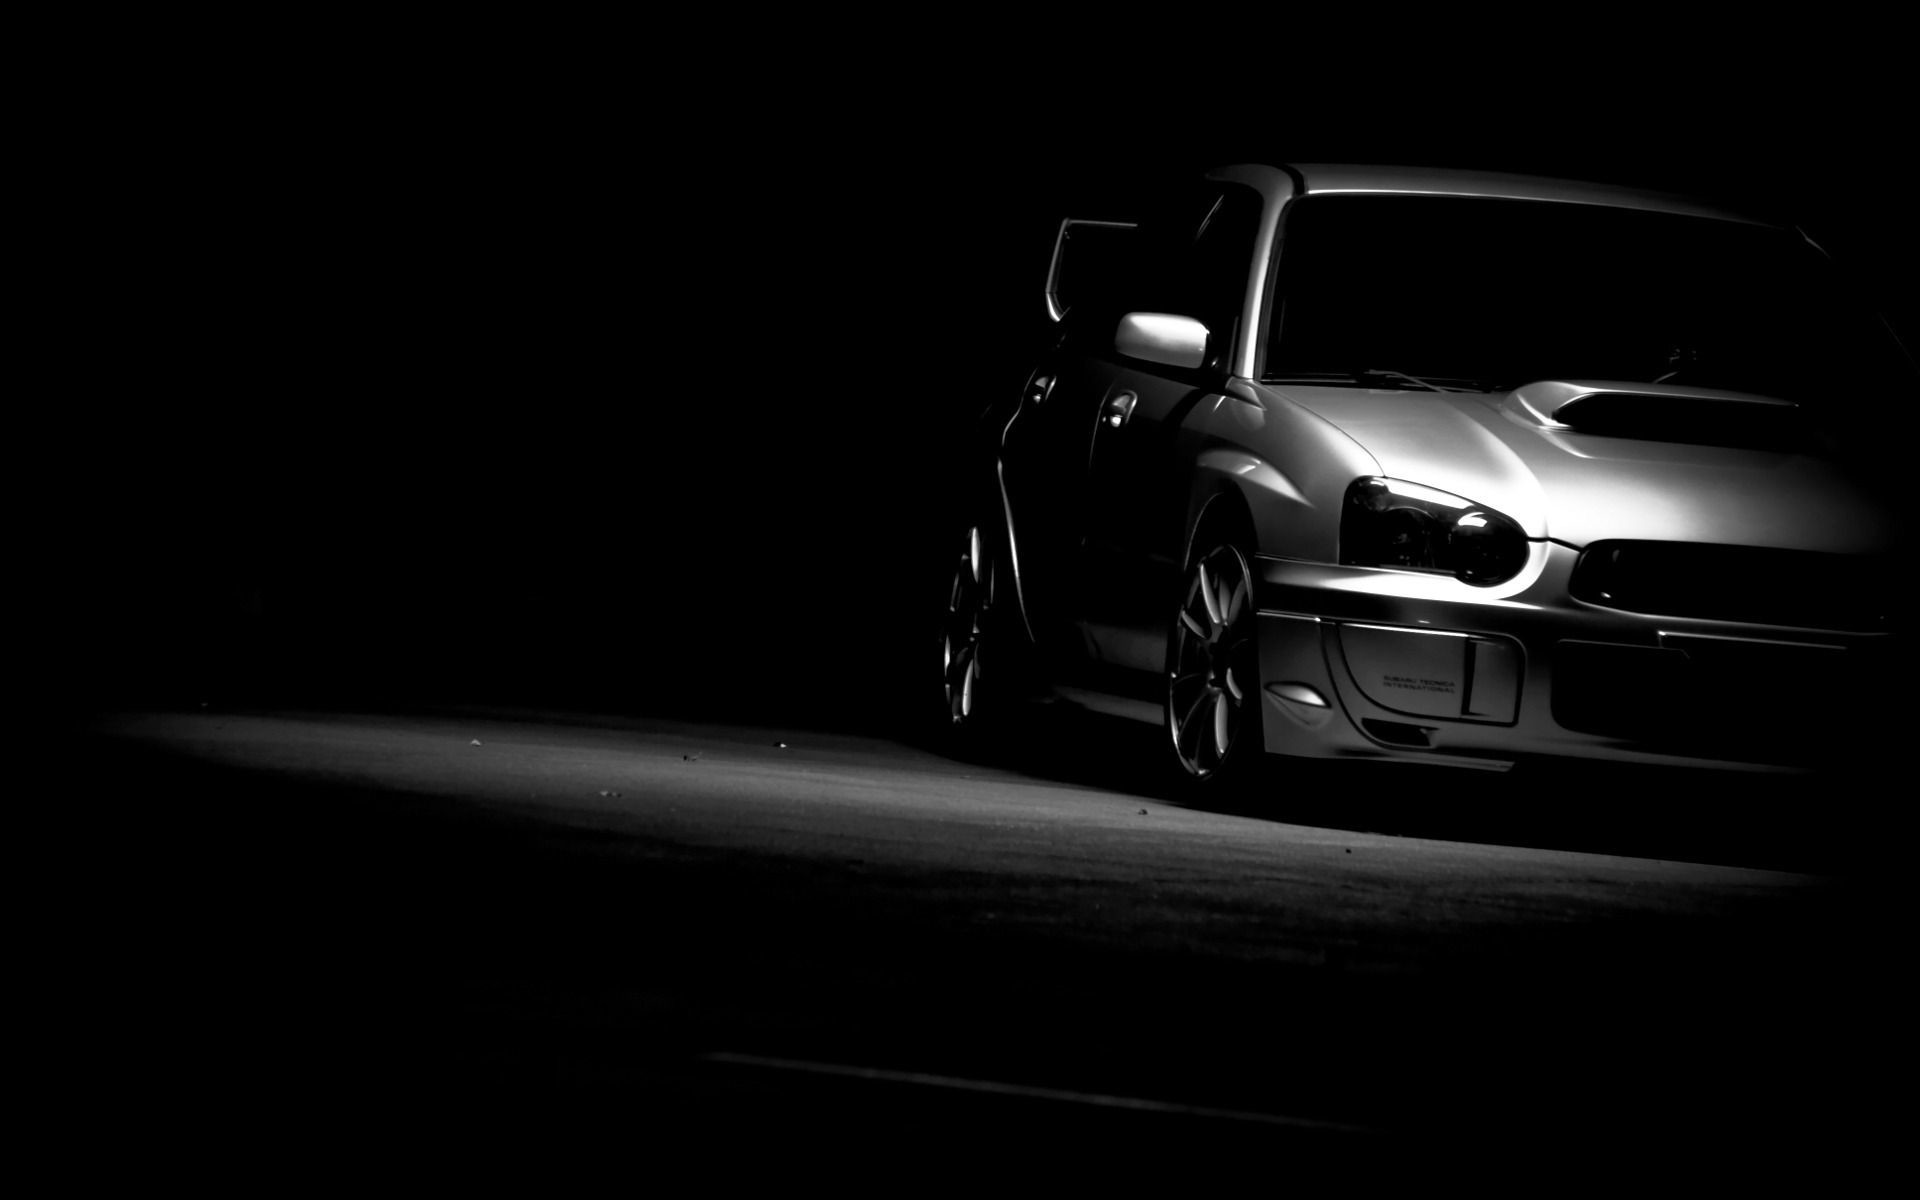 1920x1200 Black Car Wallpaper Find best latest Black Car Wallpaper for your PC  desktop background & mobile phones.